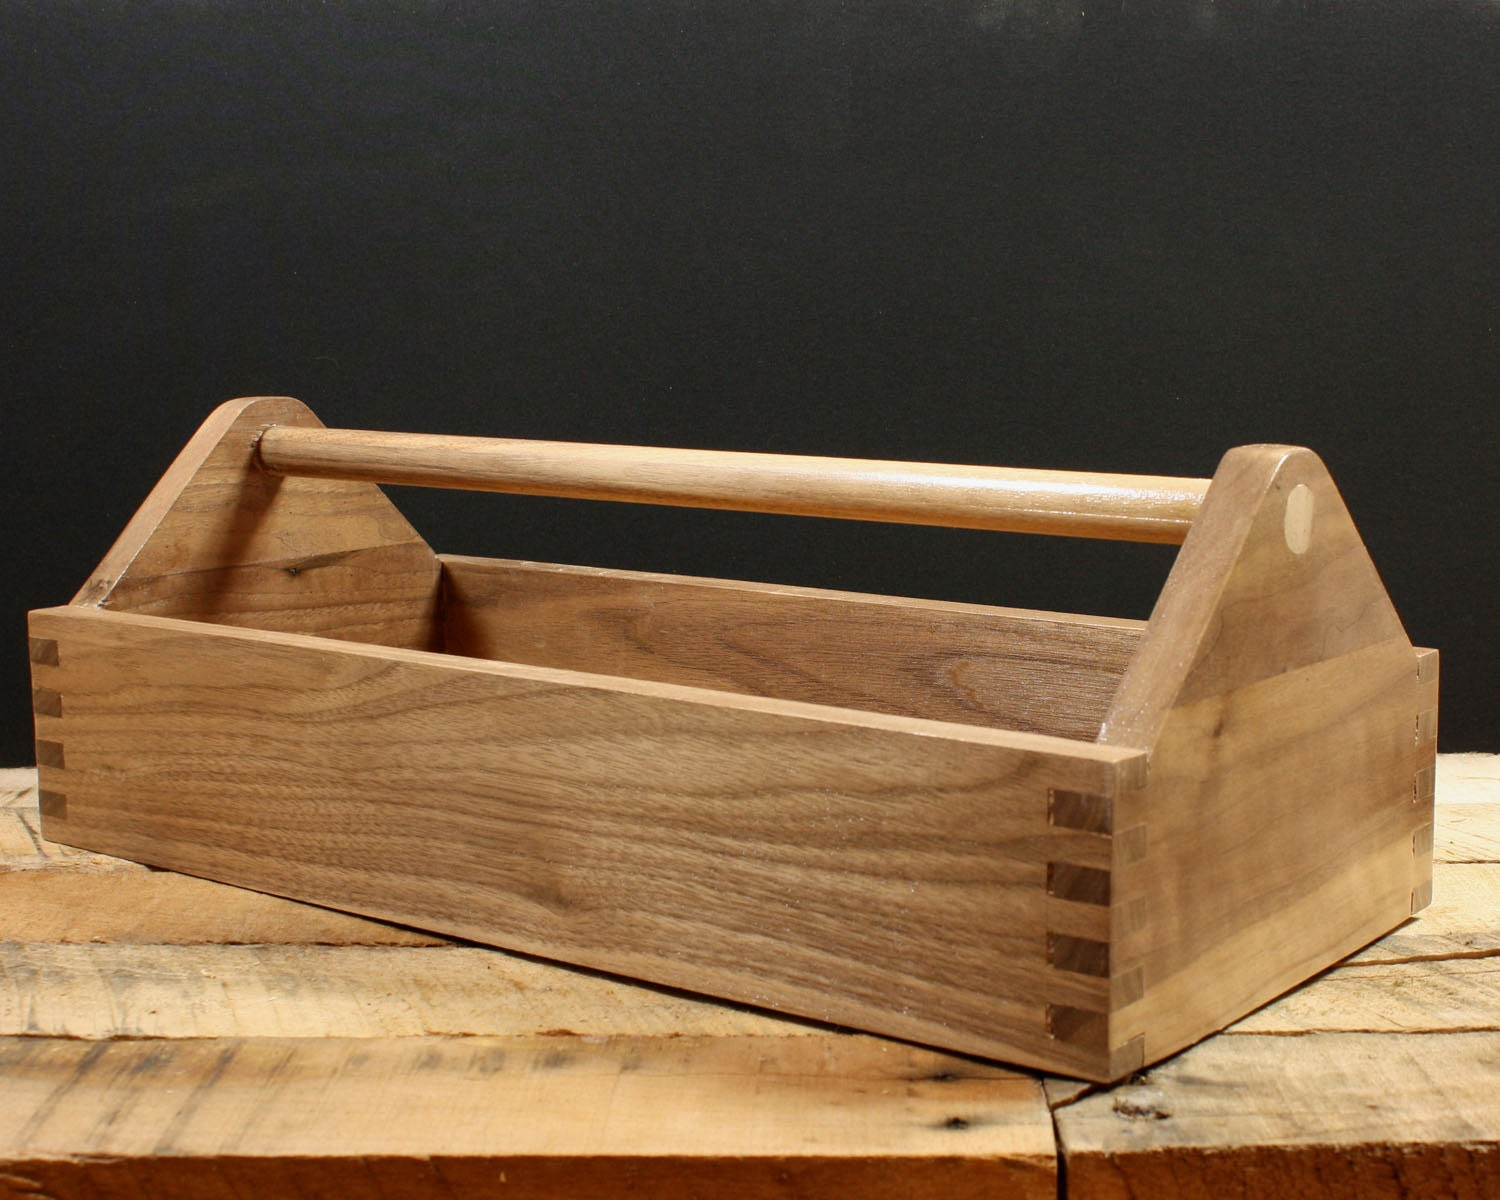 Wood Toolbox Tool Caddy Garden Tote Hardwood Box Storage